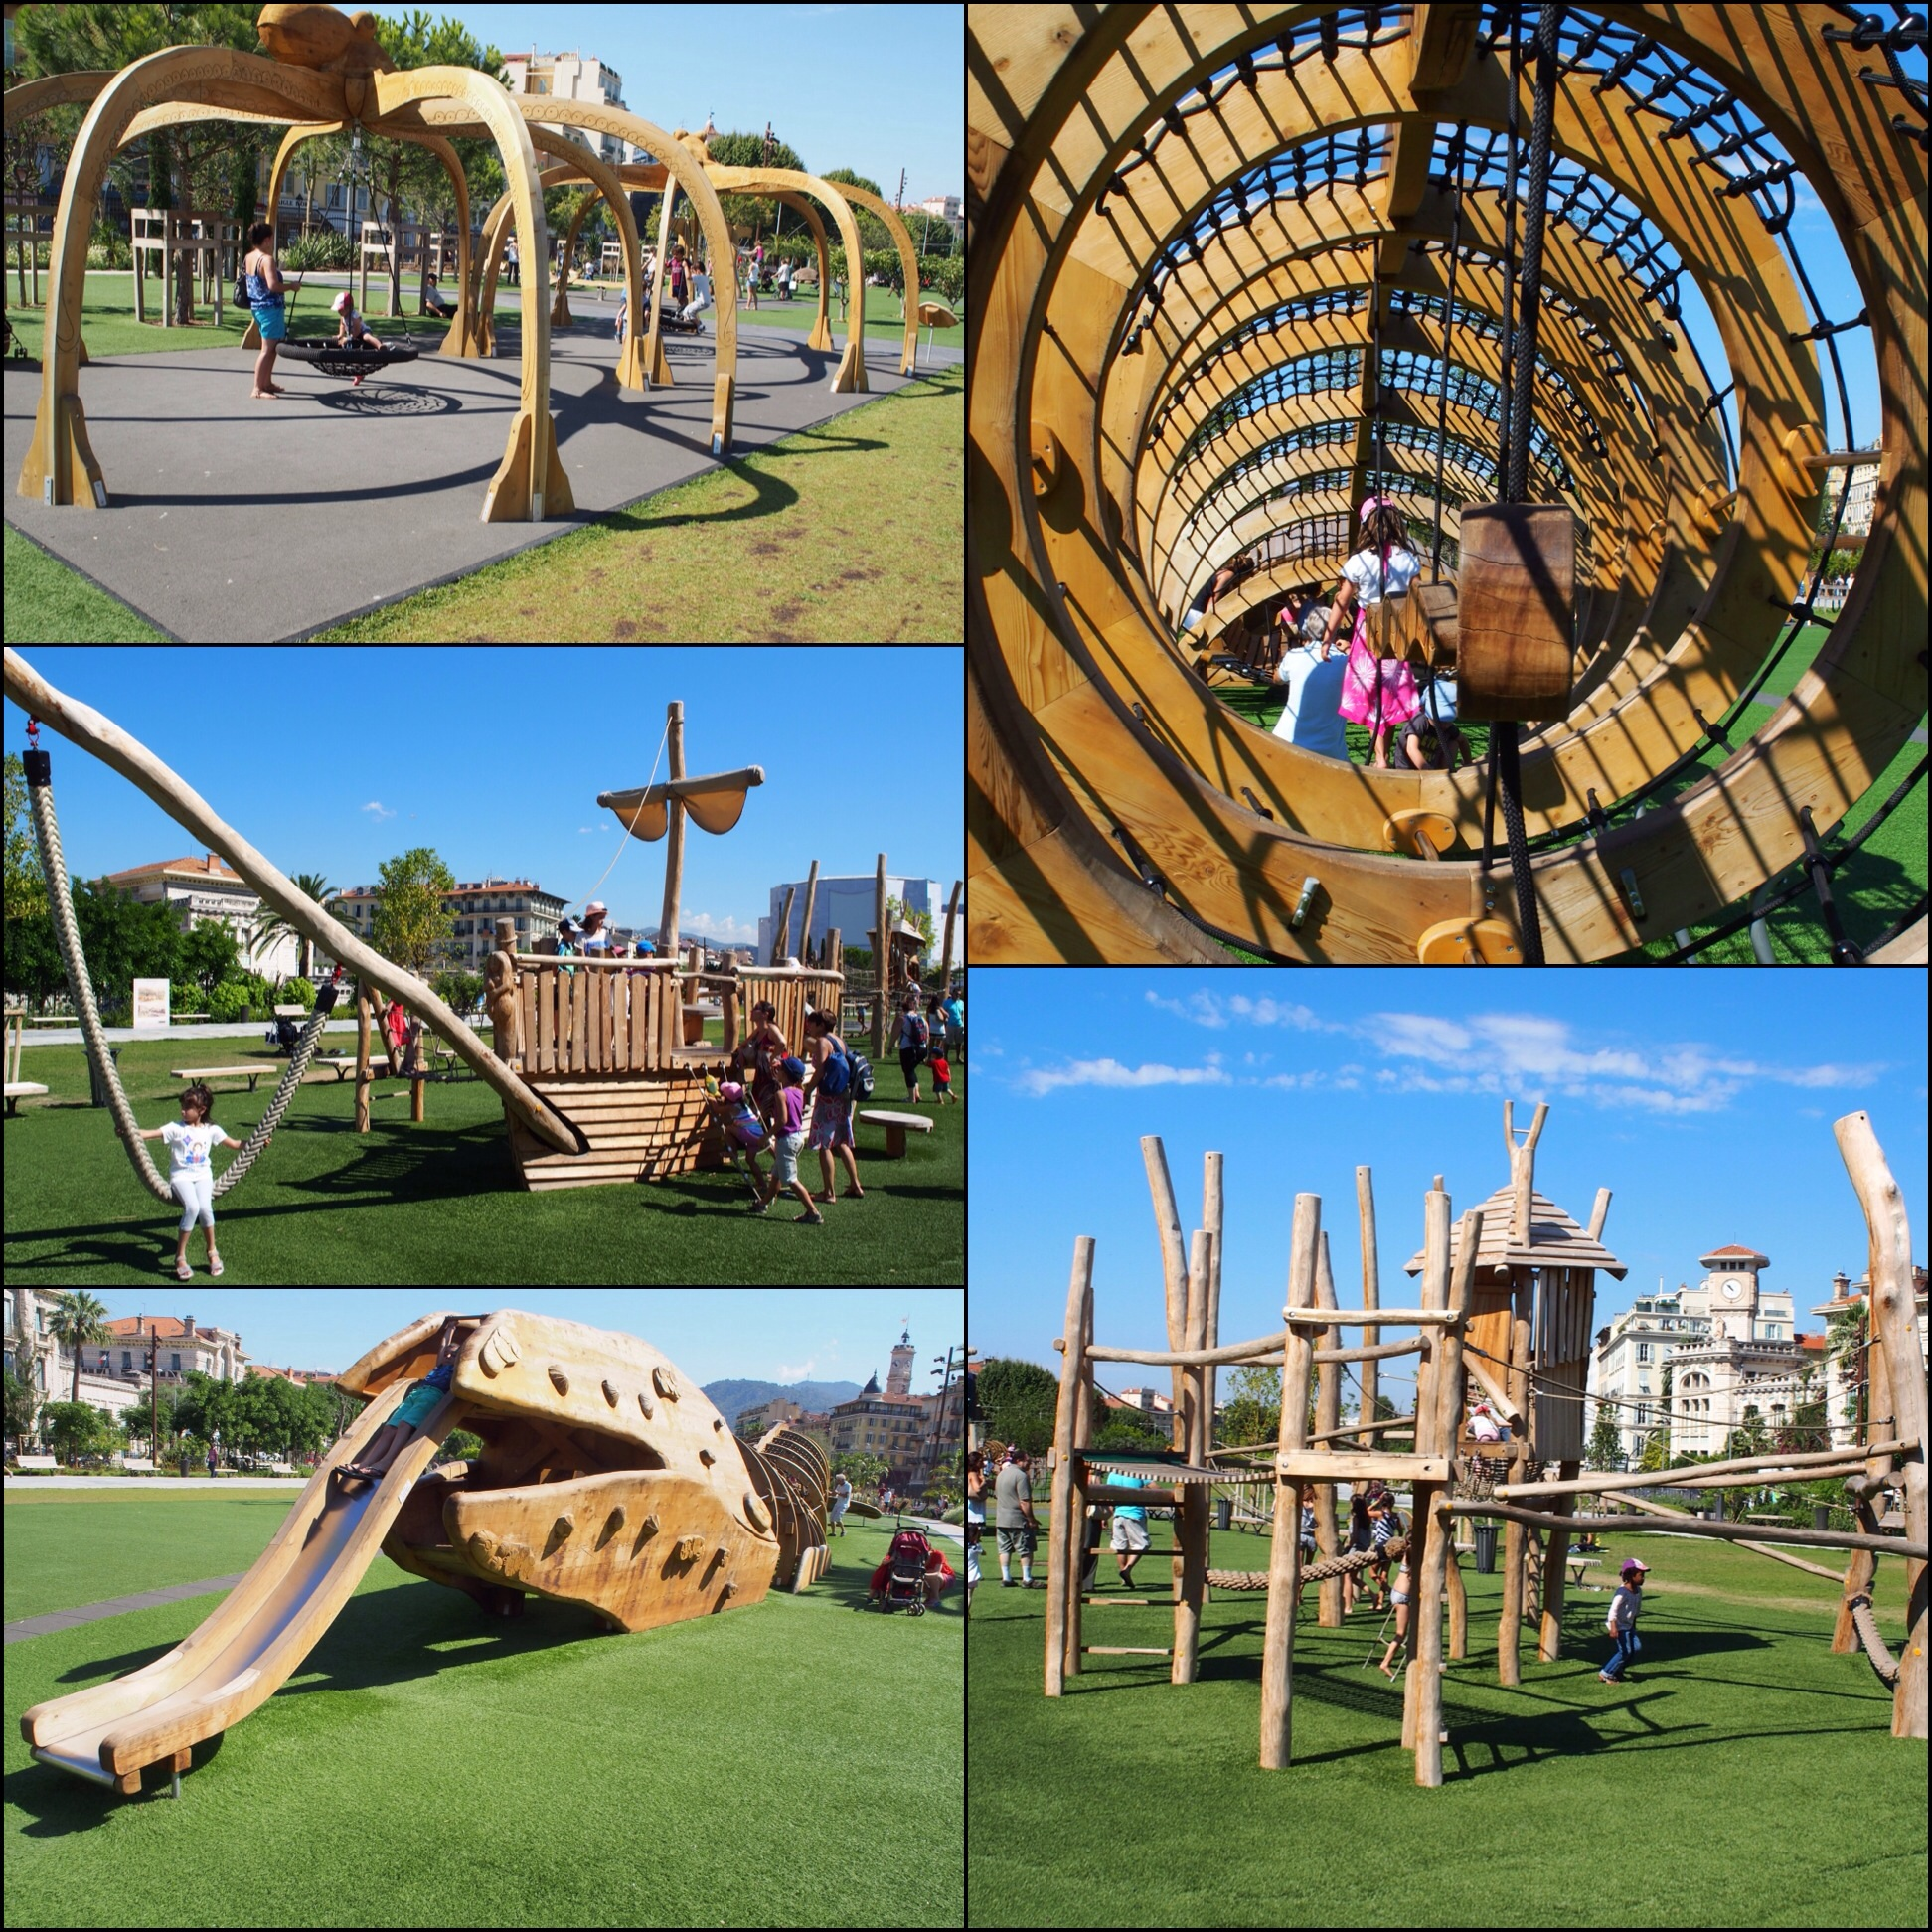 A fraction of the available spaces for kids to play